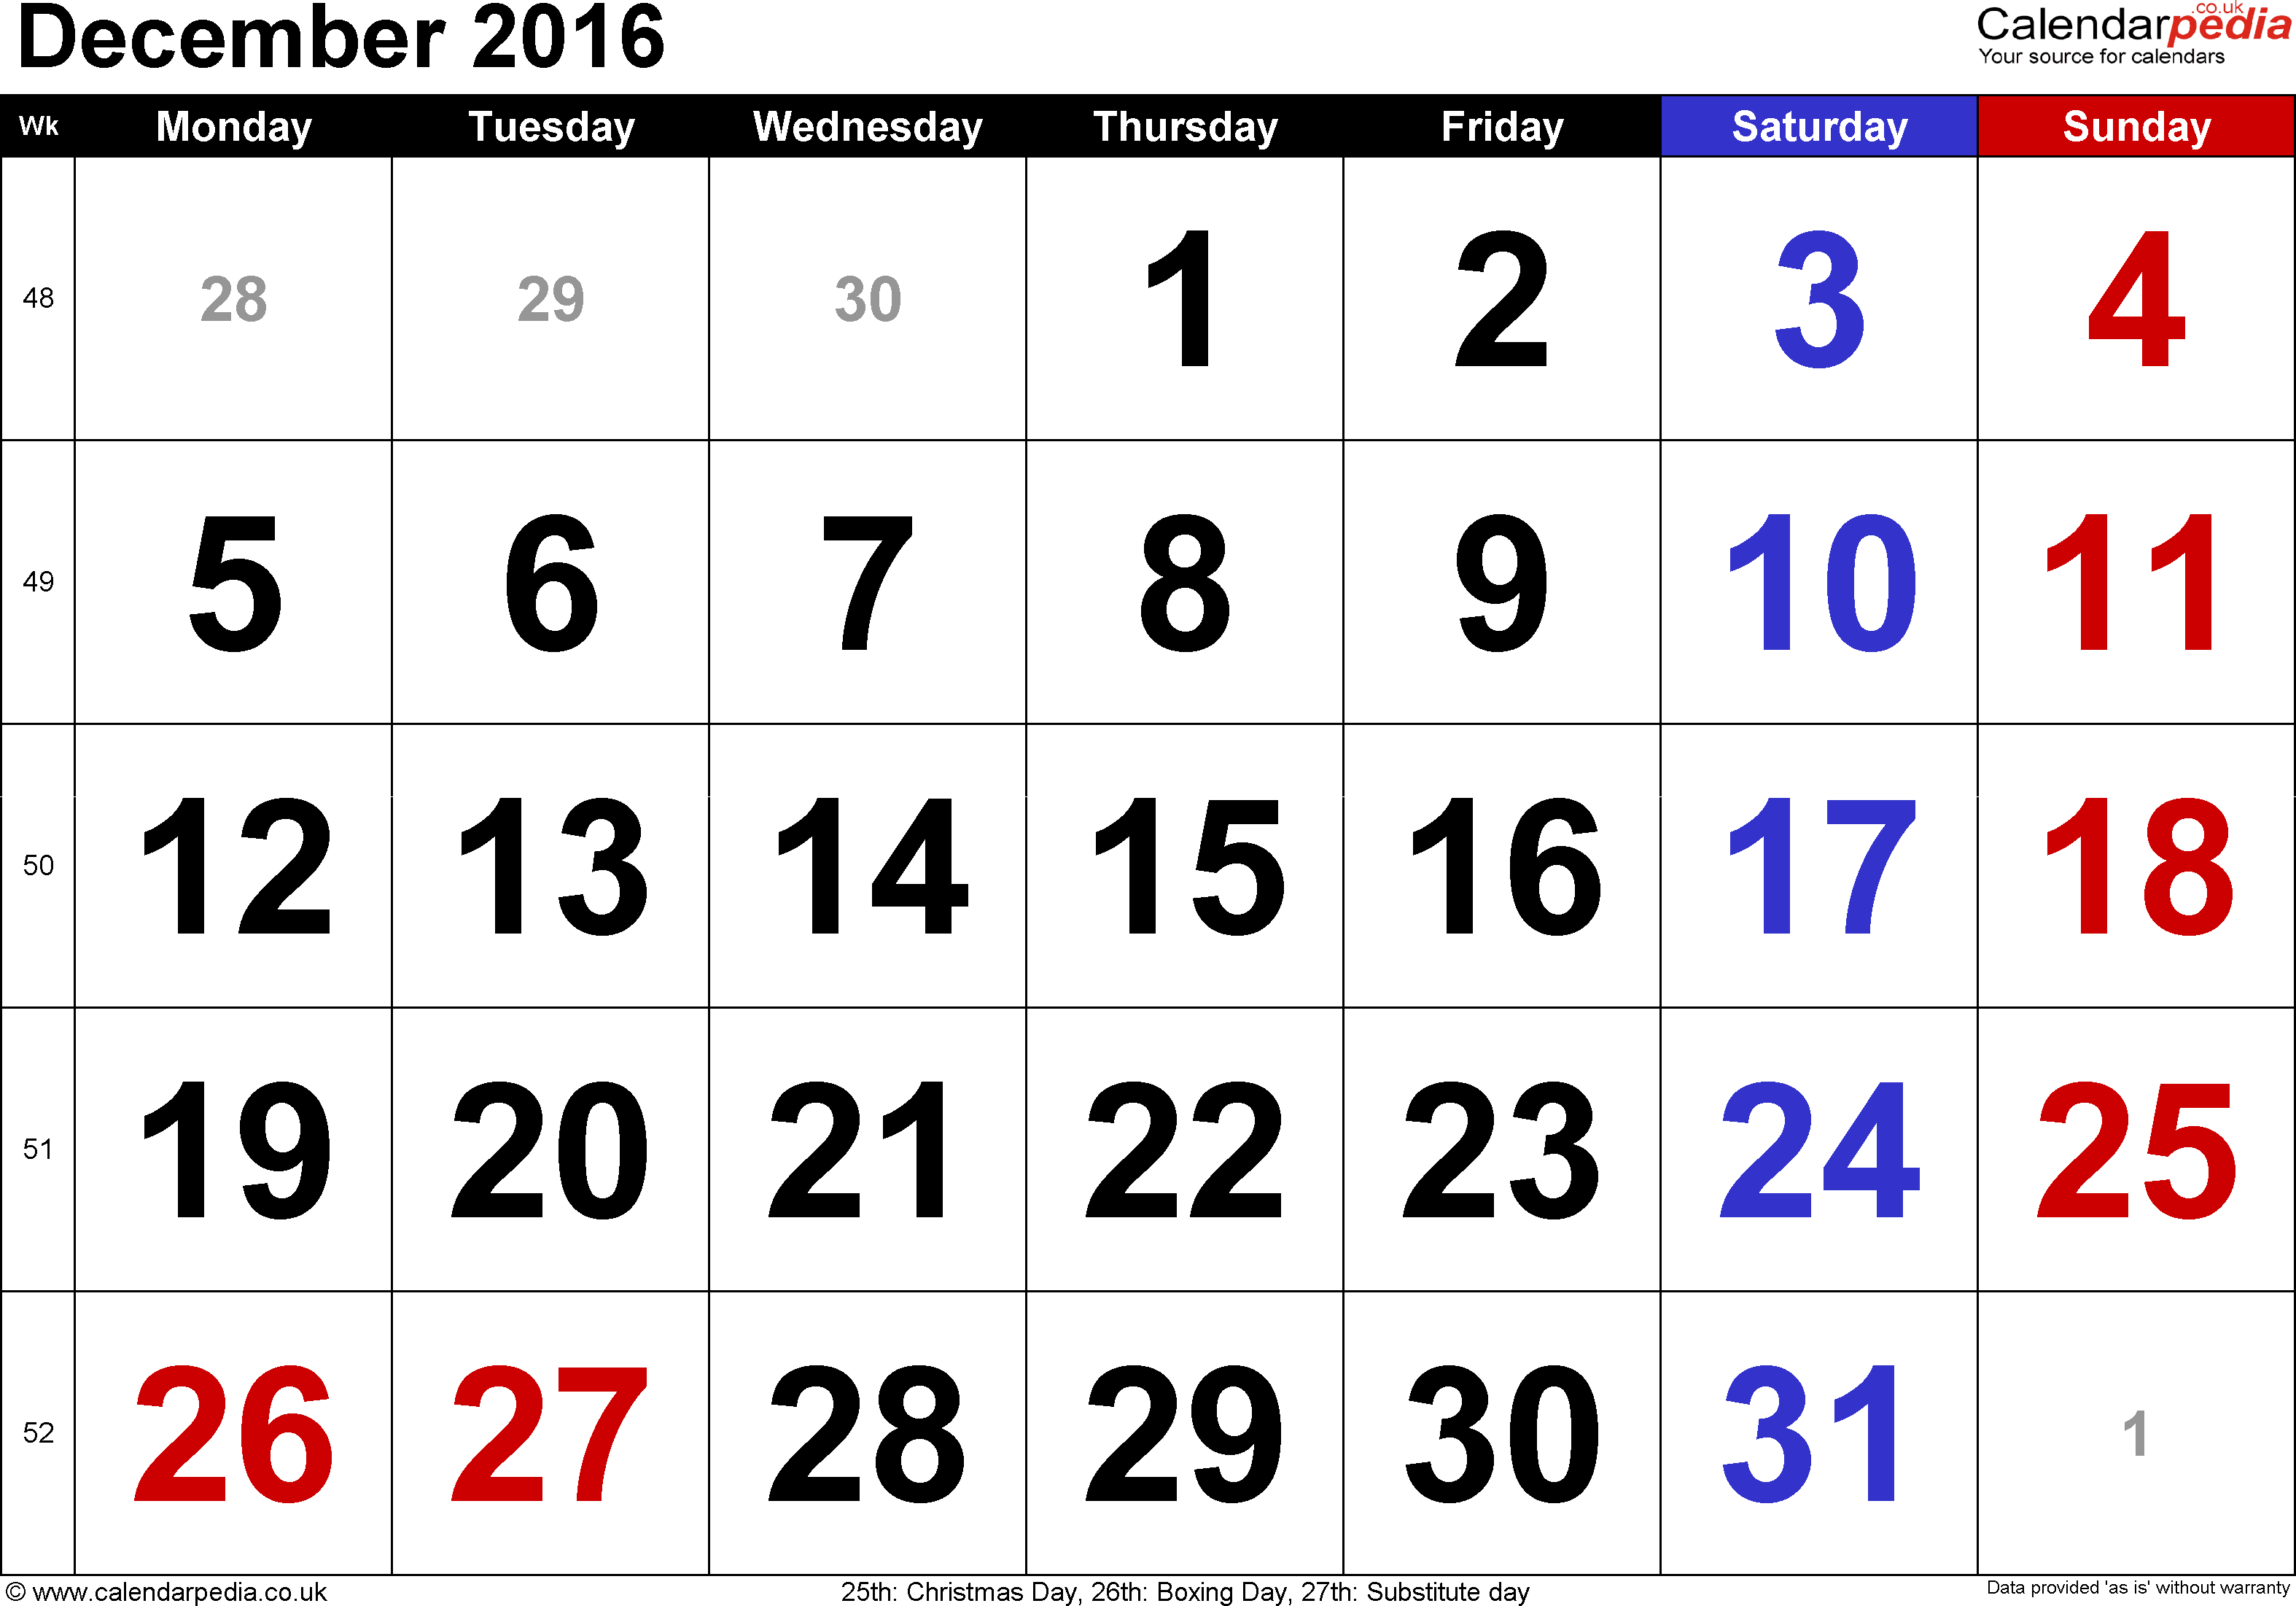 August 2012 calendar clipart image free December 2016 Calendar with Holidays USA Singapore UK Canada India image free